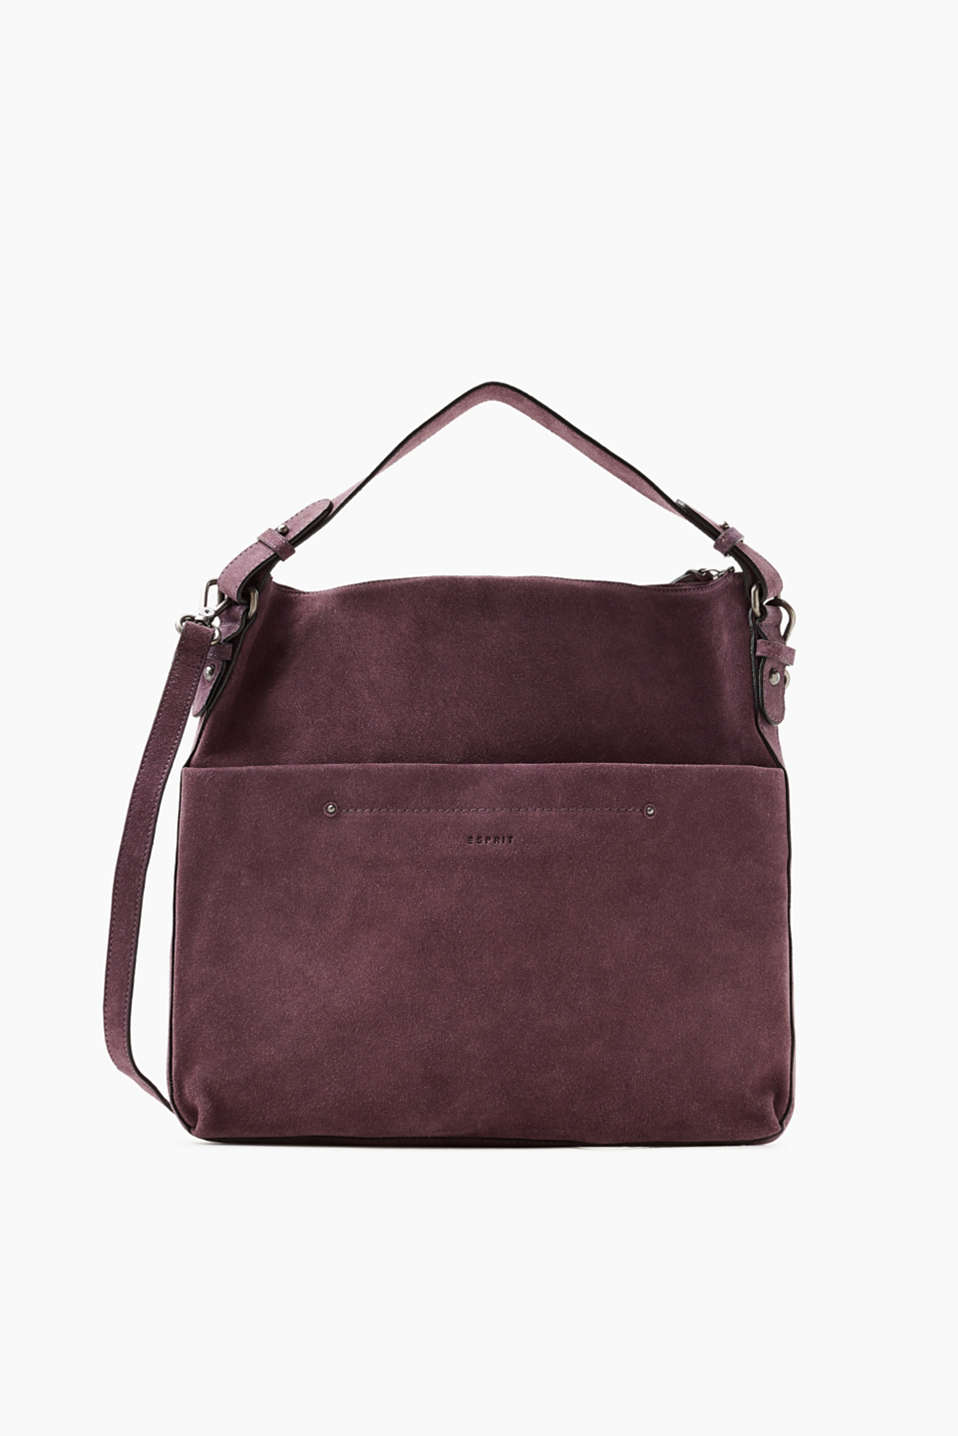 A timeless everyday accessory! This hobo bag is made of fine suede and boasts trendy colour nuances.